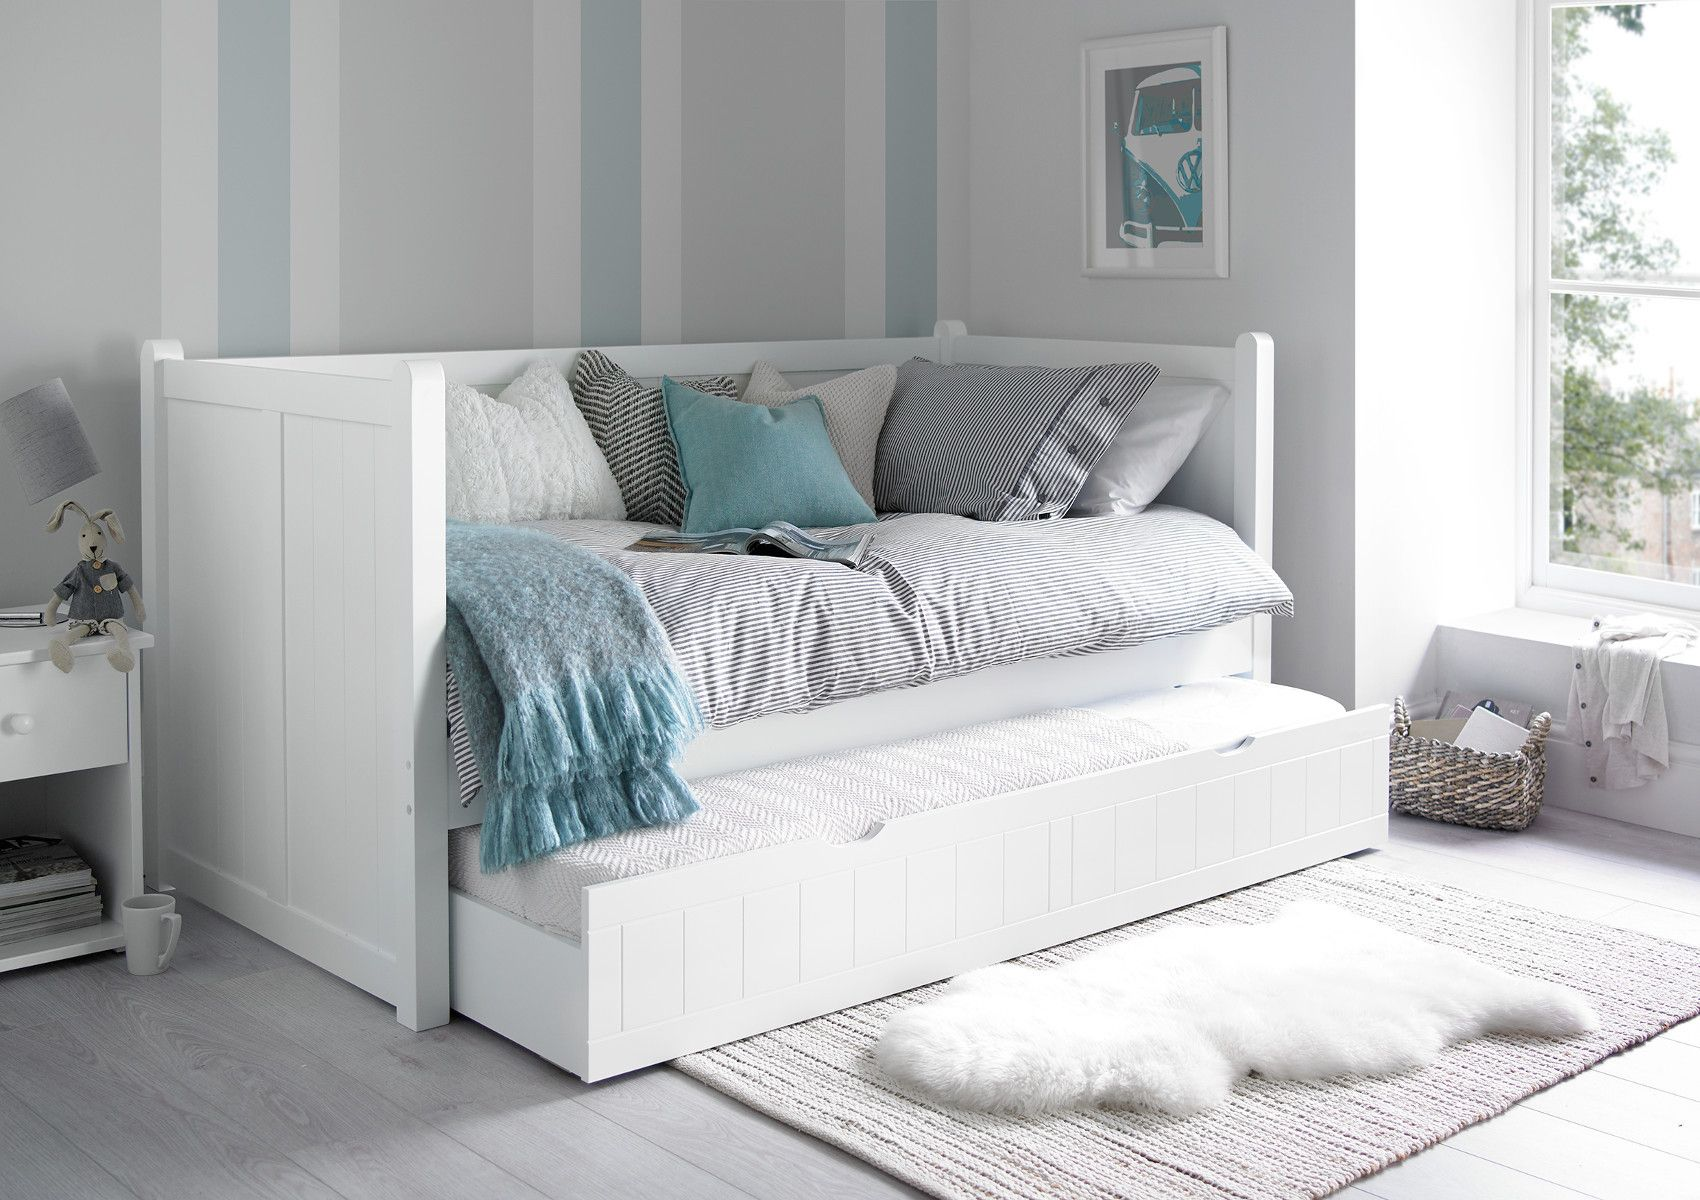 Hampton Day Bed With Trundle Guest Bed images